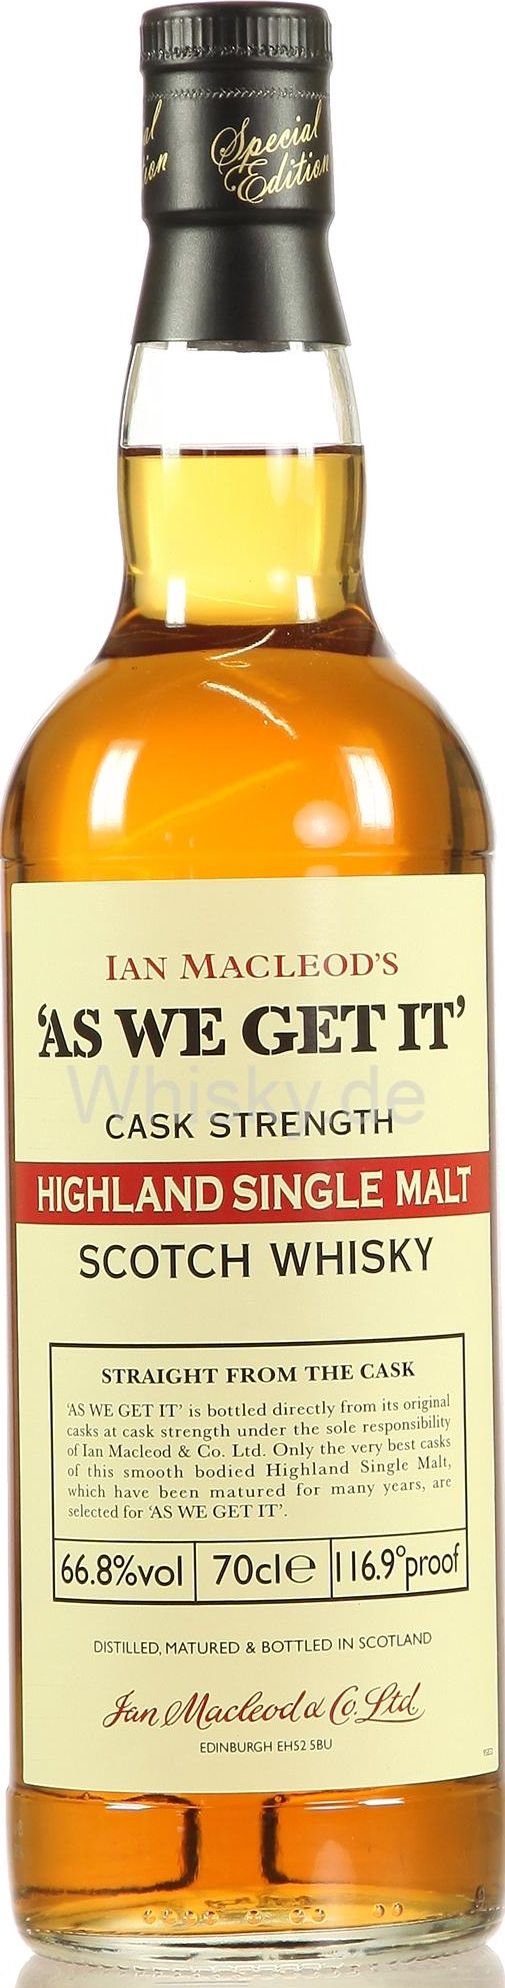 As We Get It - Highland Single Malt